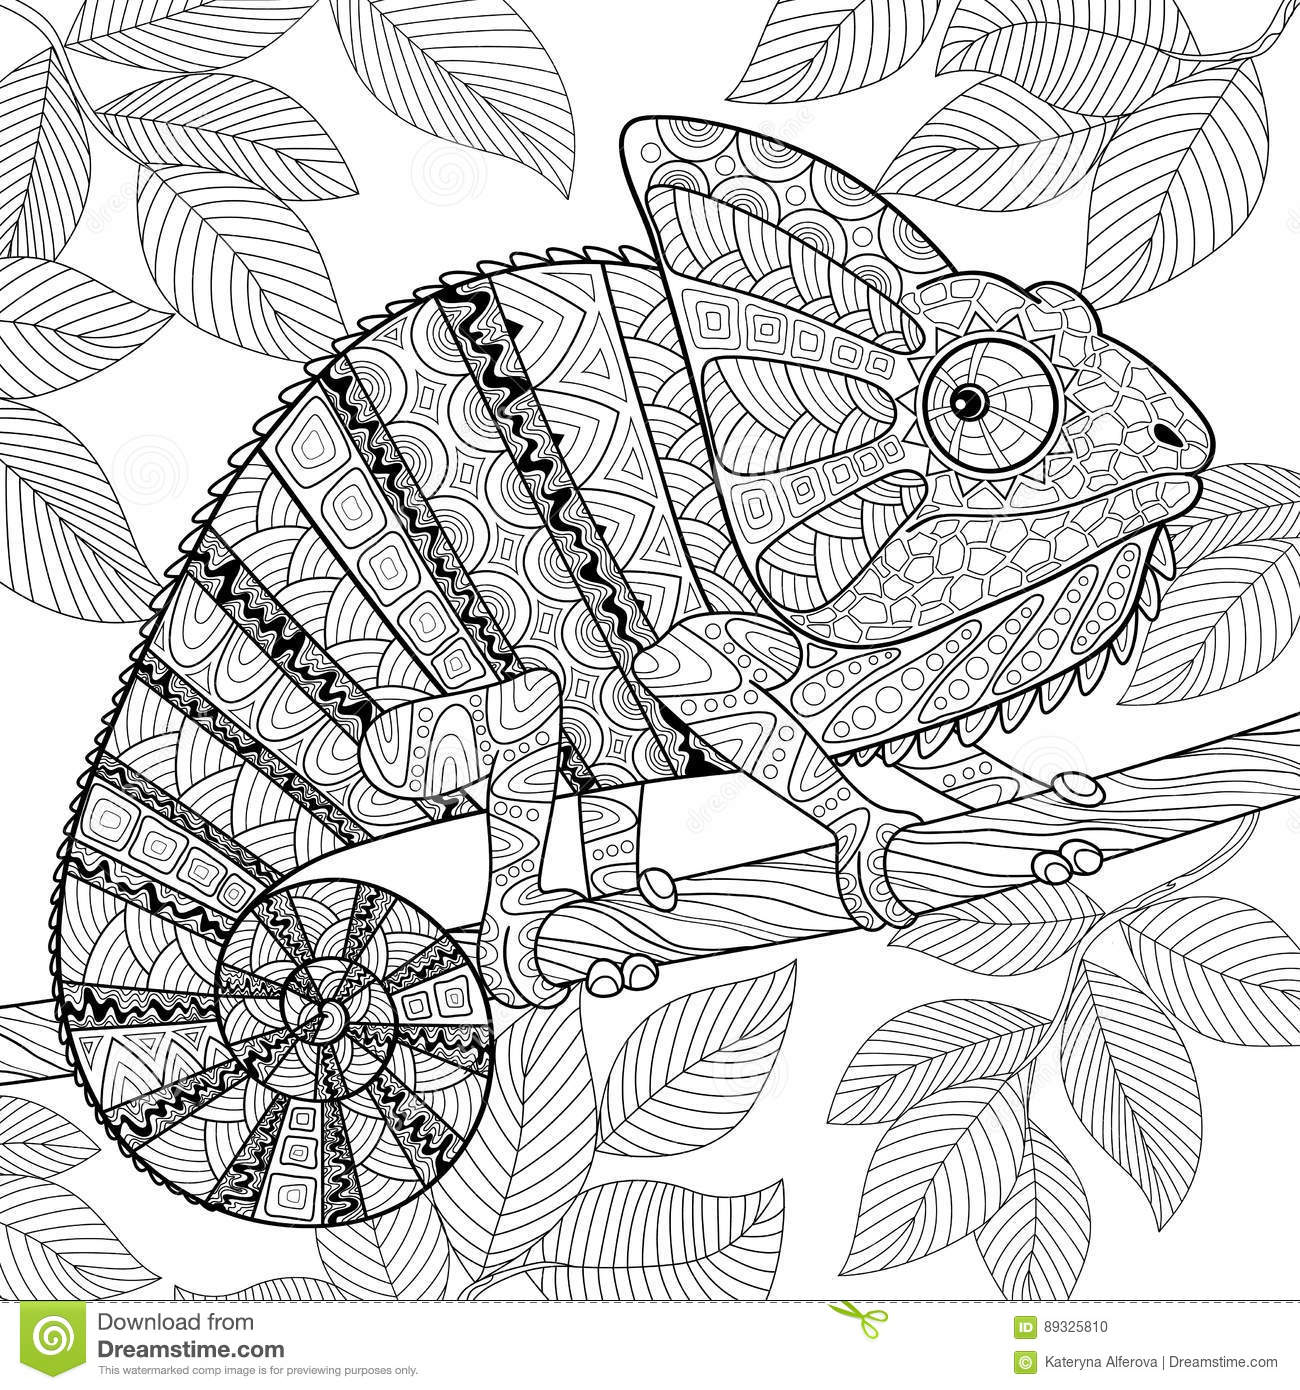 chameleon in zentangle style adult antistress coloring